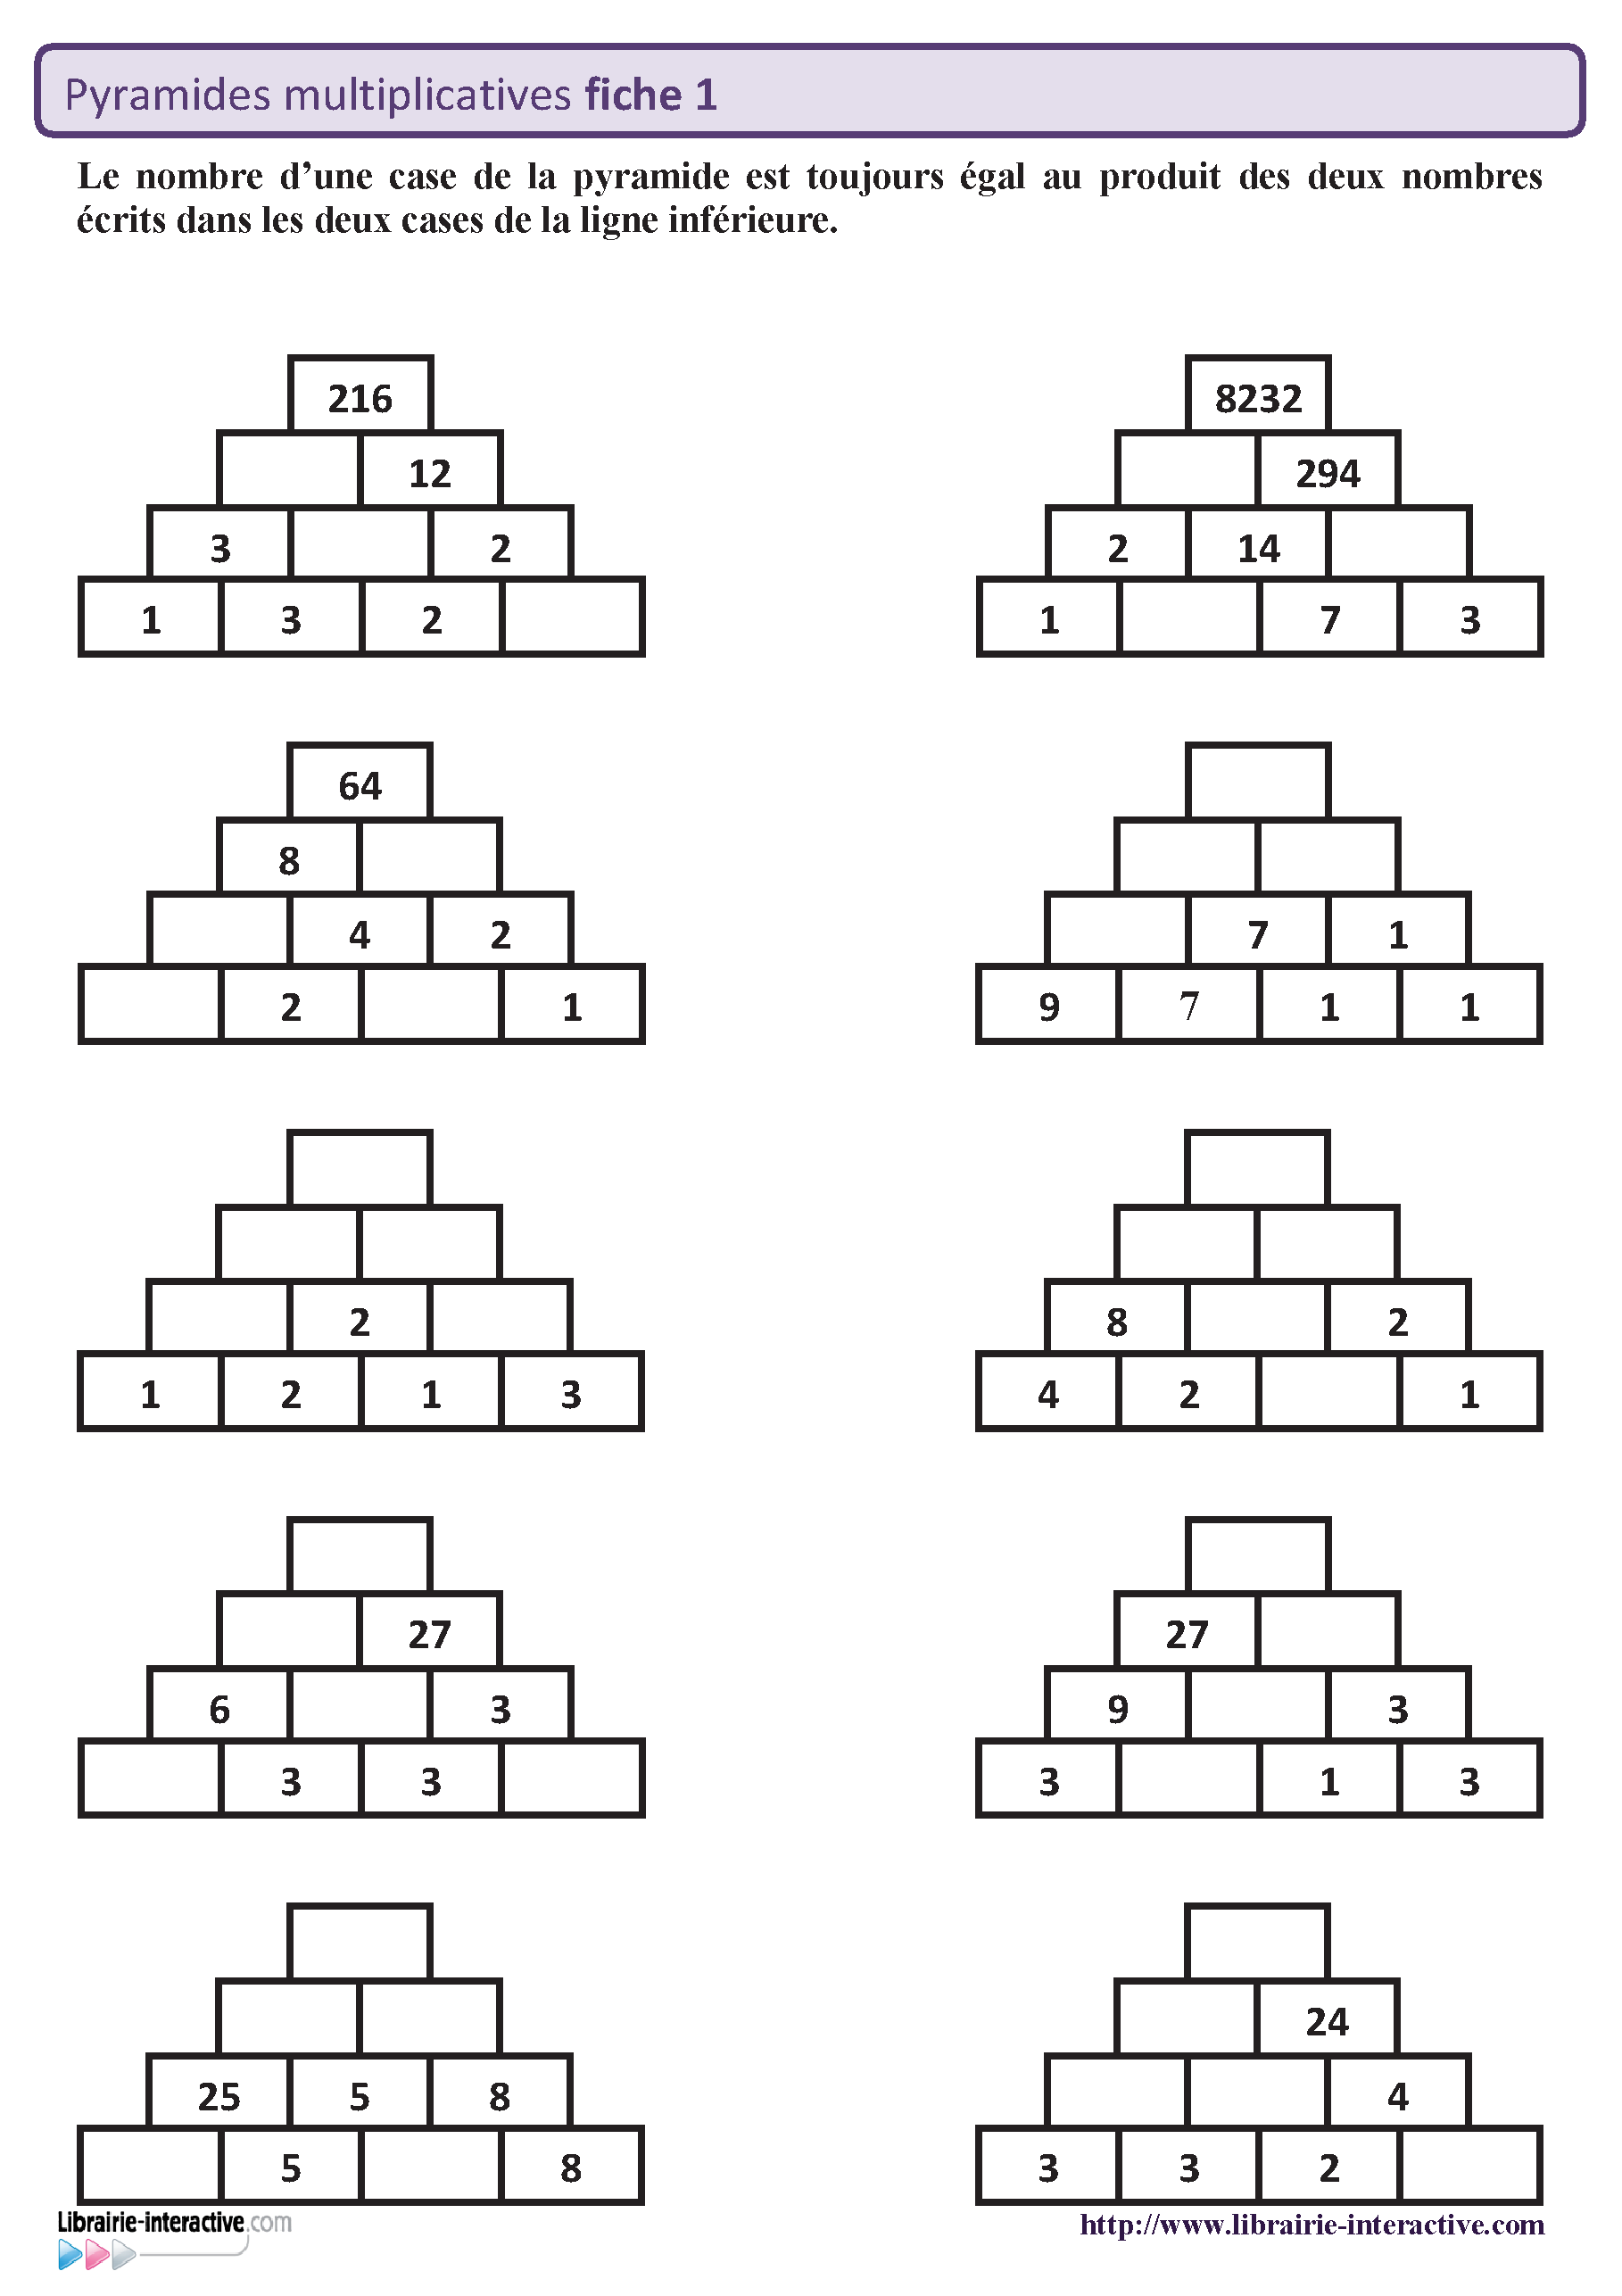 50 pyramides multiplicatives sur 5 fiches autocorrectives for Table de multiplication cm2